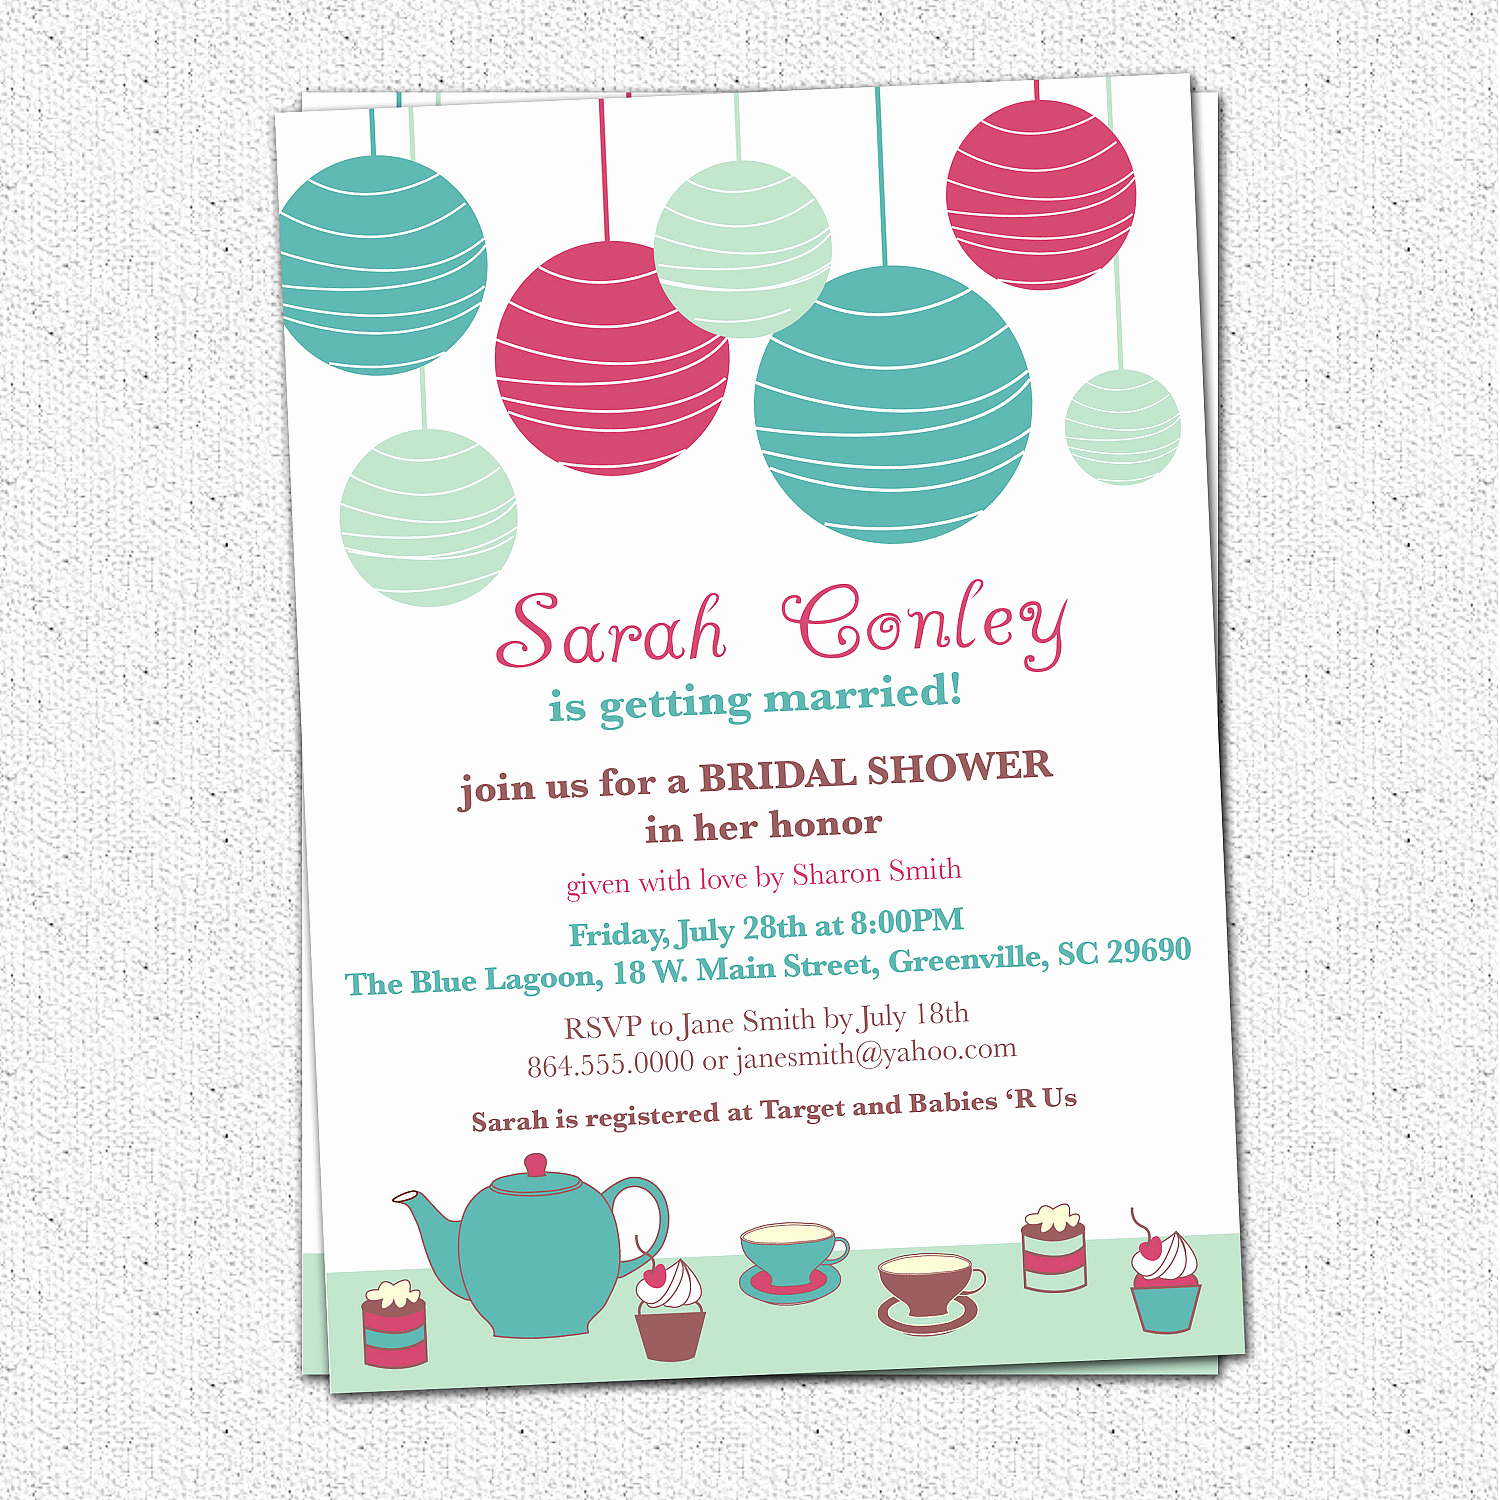 Bridal Shower Invitation Wording Lovely Bridal Shower Invitations Tea Brunch Lanterns Cupcakes